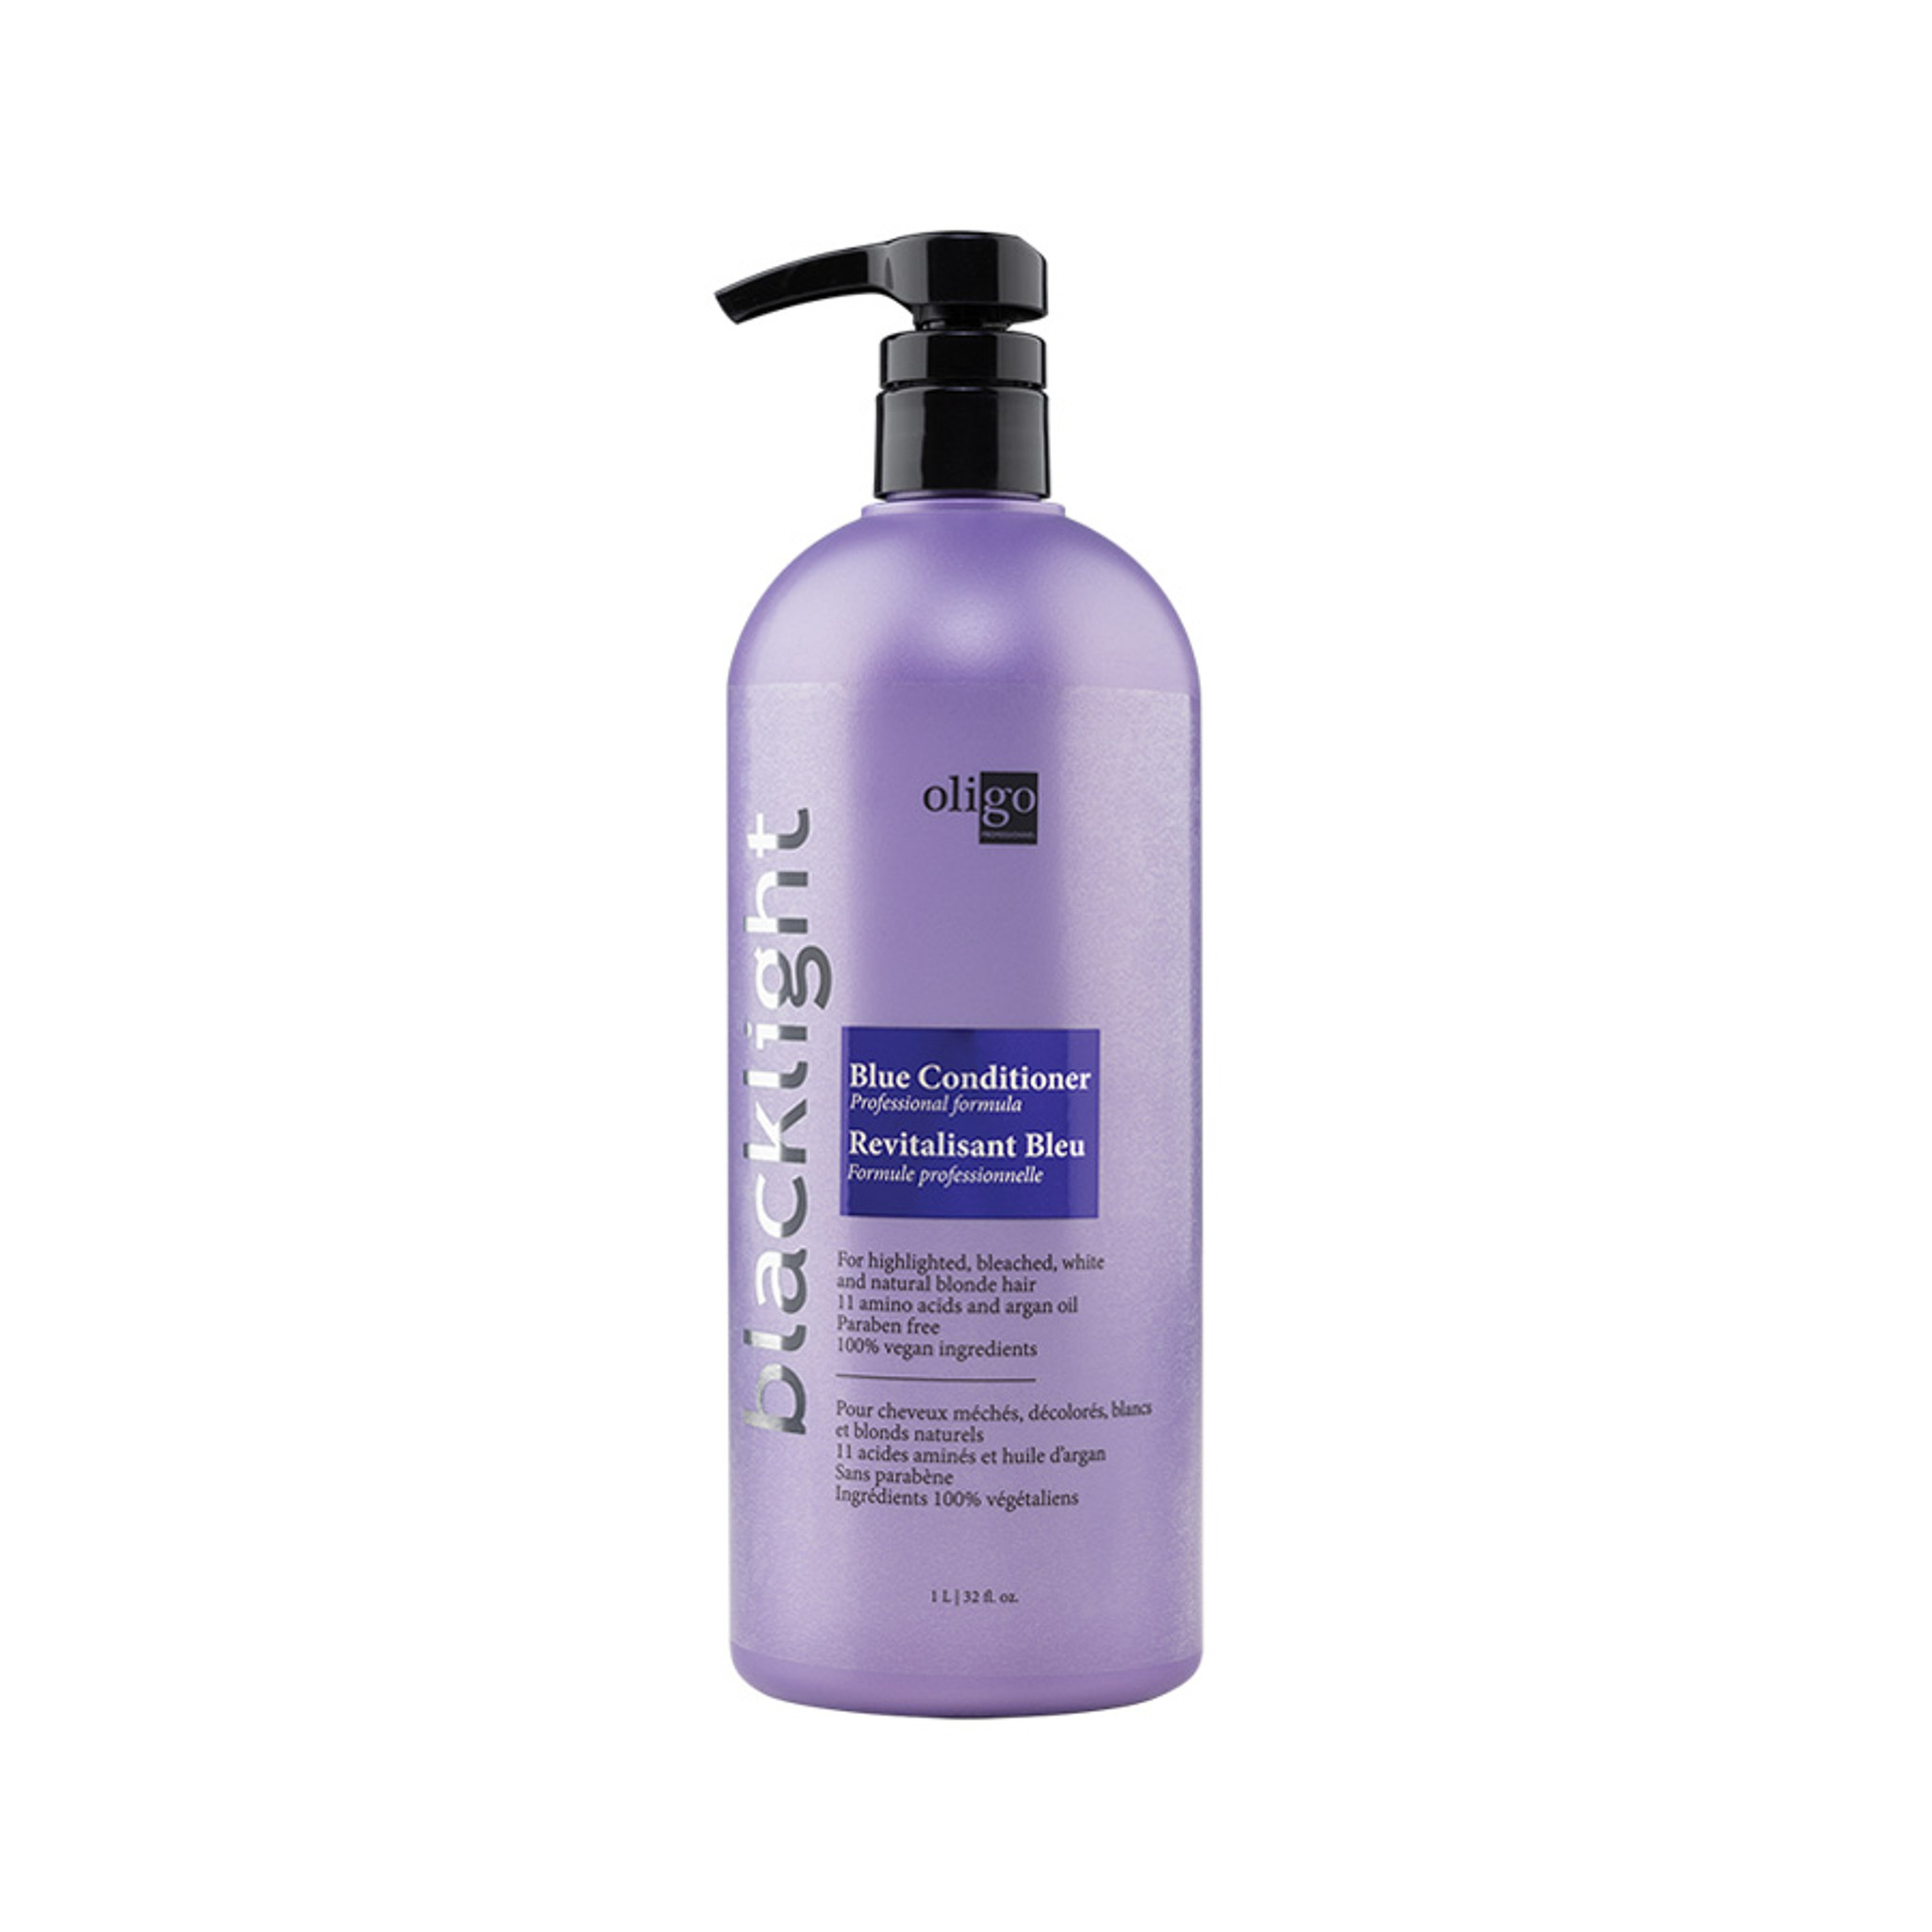 Oligo Pro Blacklight Blue Conditioner - Professional Formula 1lt by Shop Salon Support - official distributor of Oligo in Australia, Hair & Barber Barbershop Trade Wholesale Hairdressing Supplies Melbourne Australia